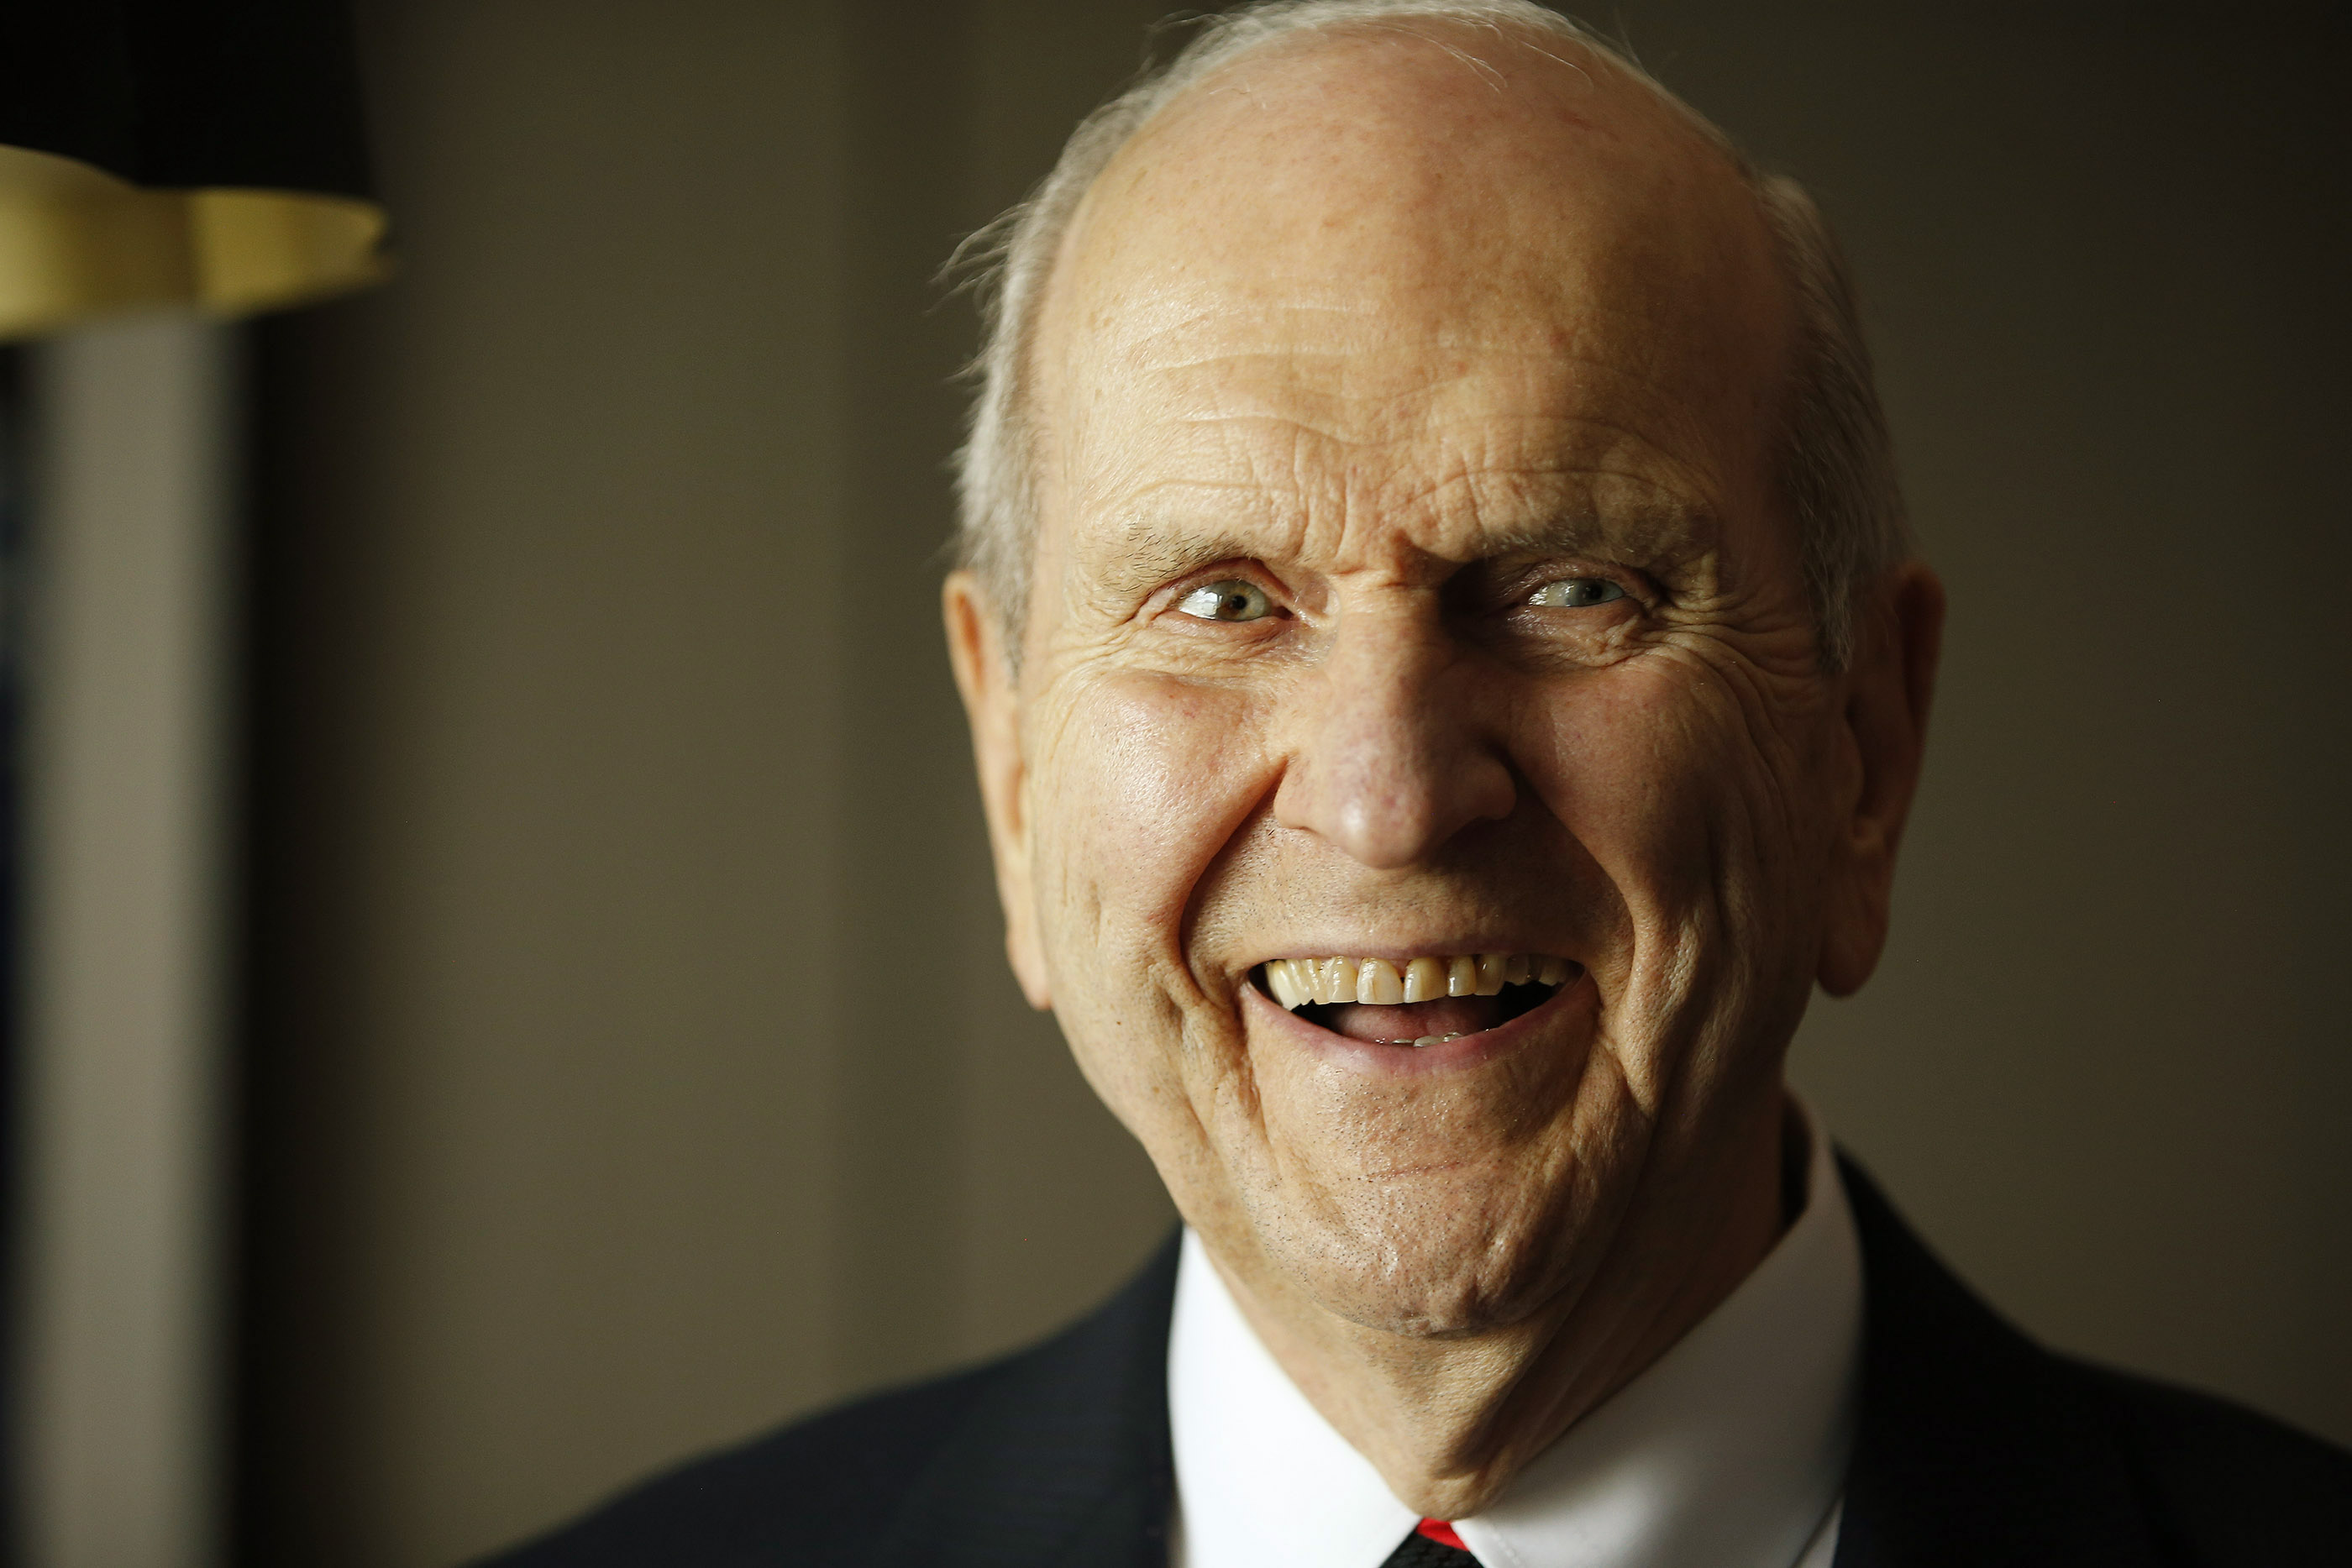 President Russell M. Nelson laughs after a press conference in Bengaluru, India, on Thursday, April 19, 2018.